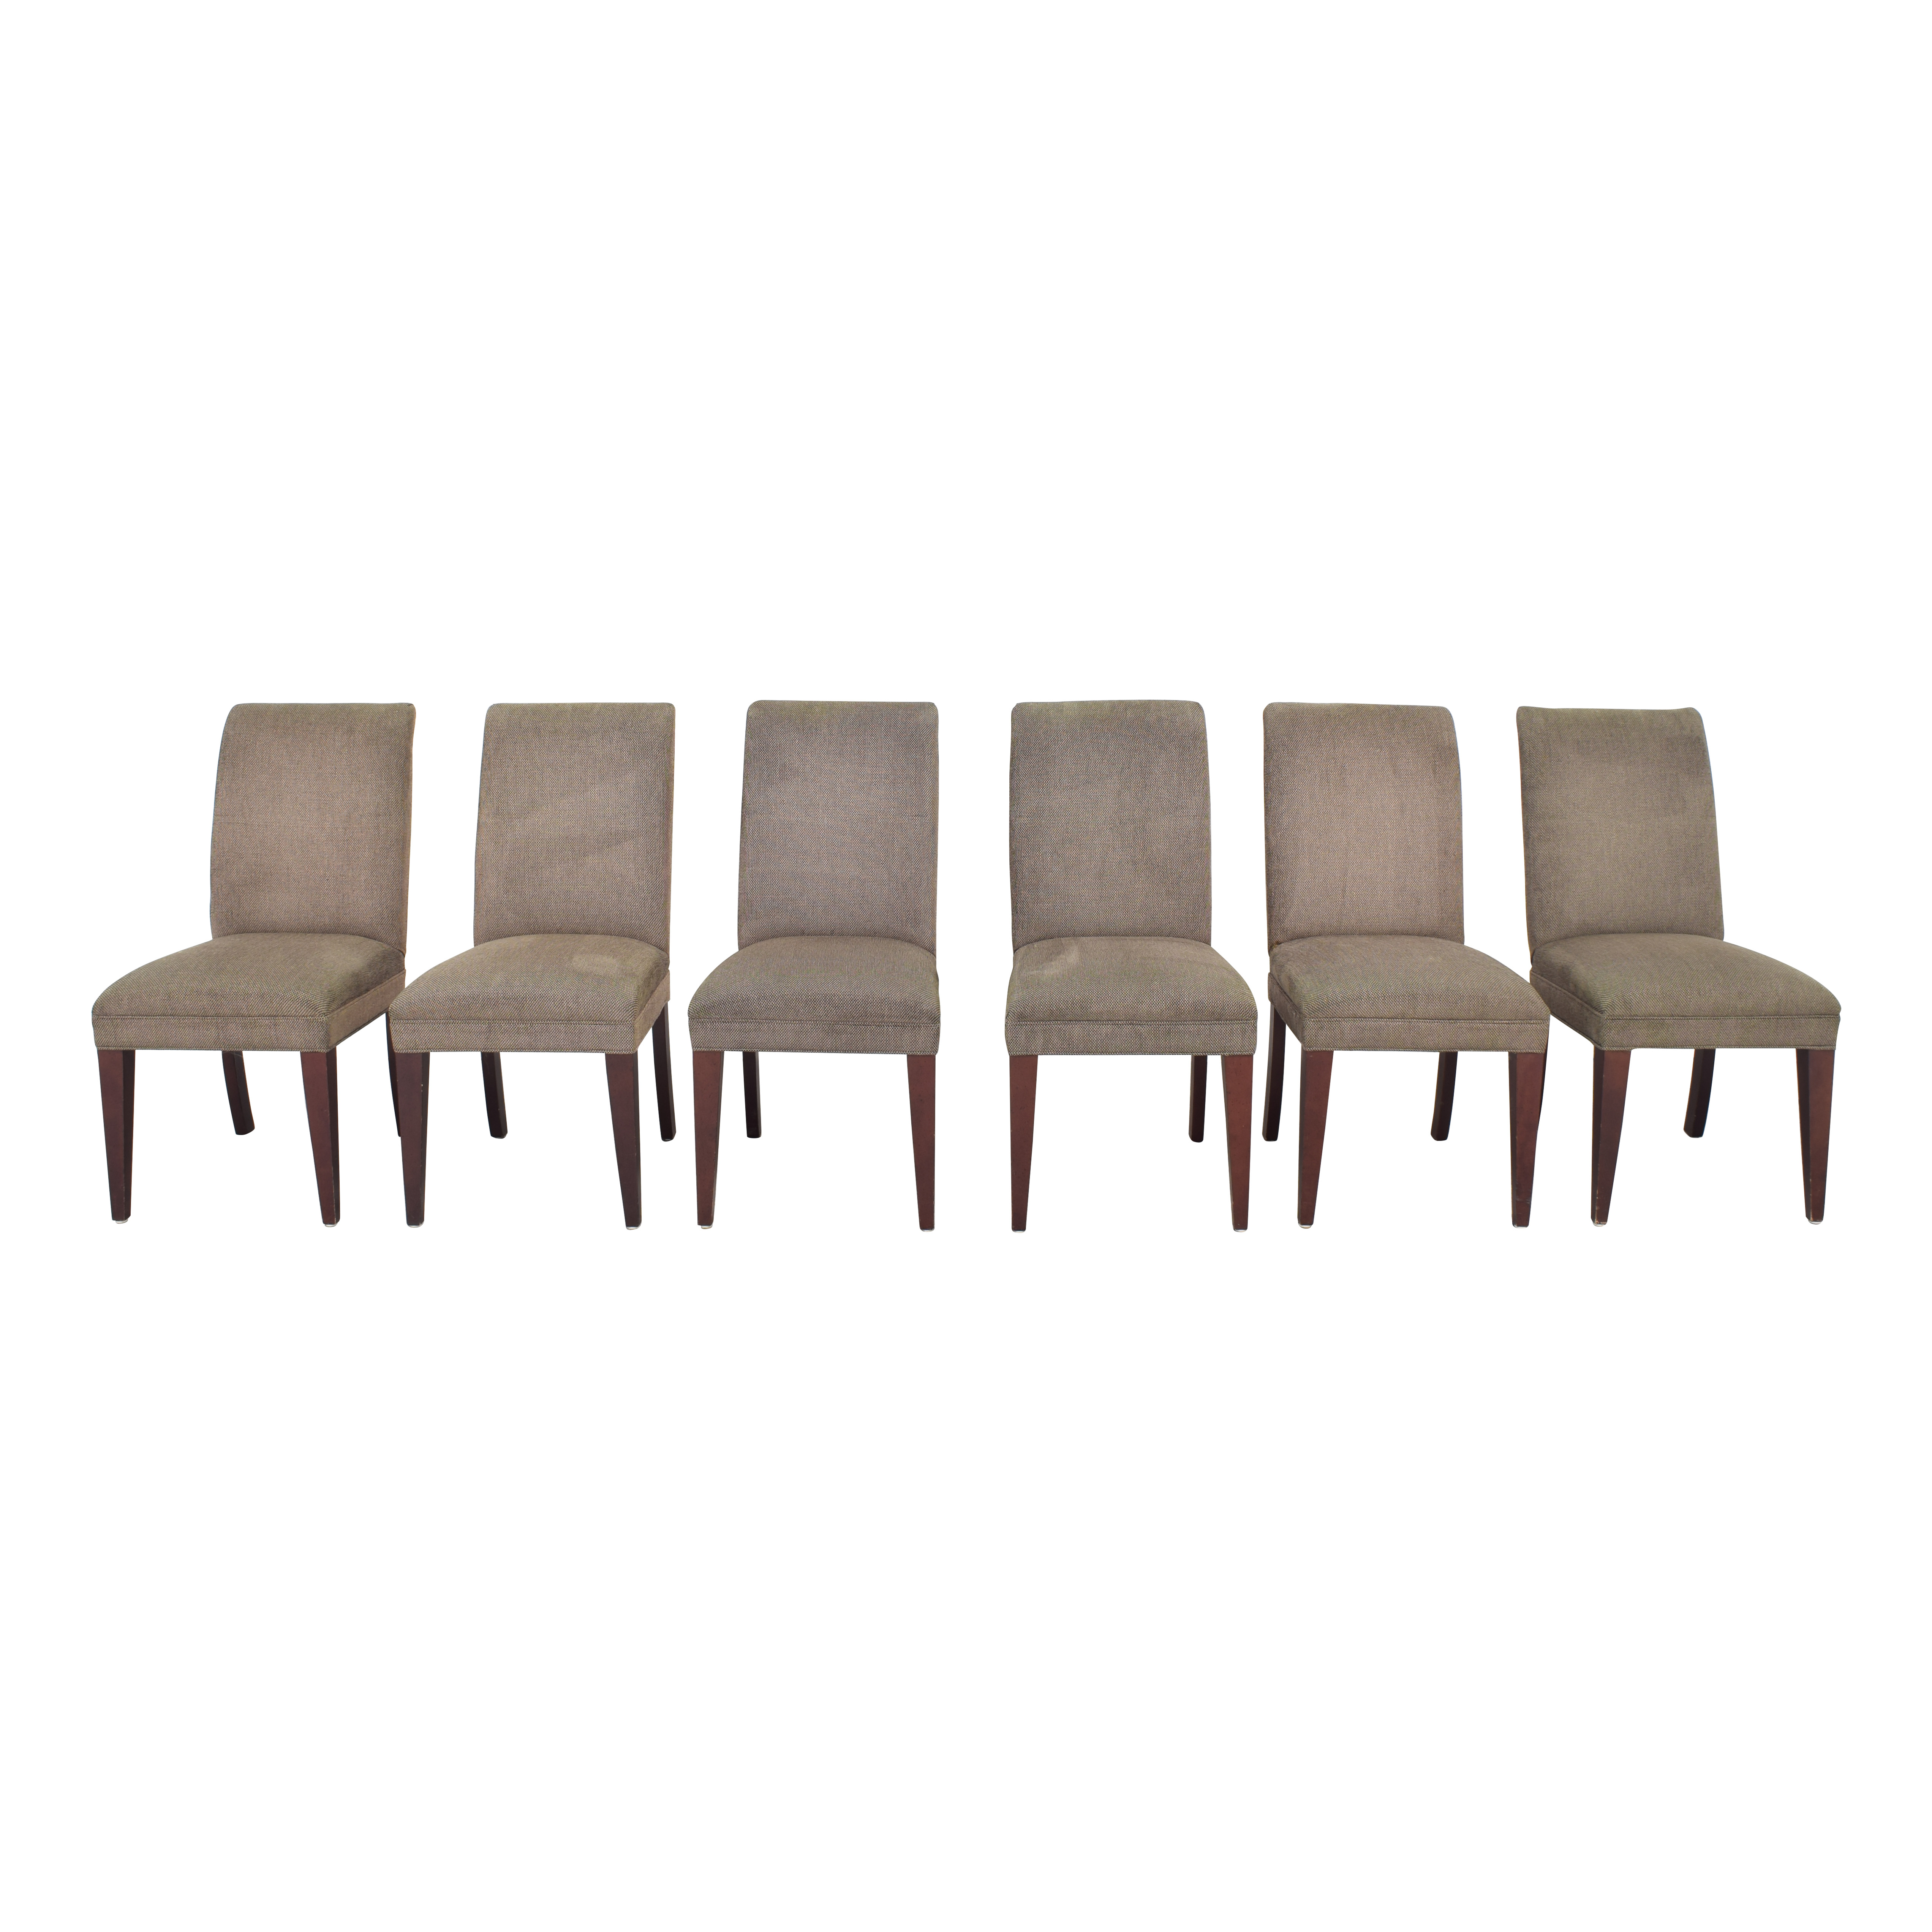 Restoration Hardware Grayson Dining Chairs / Dining Chairs